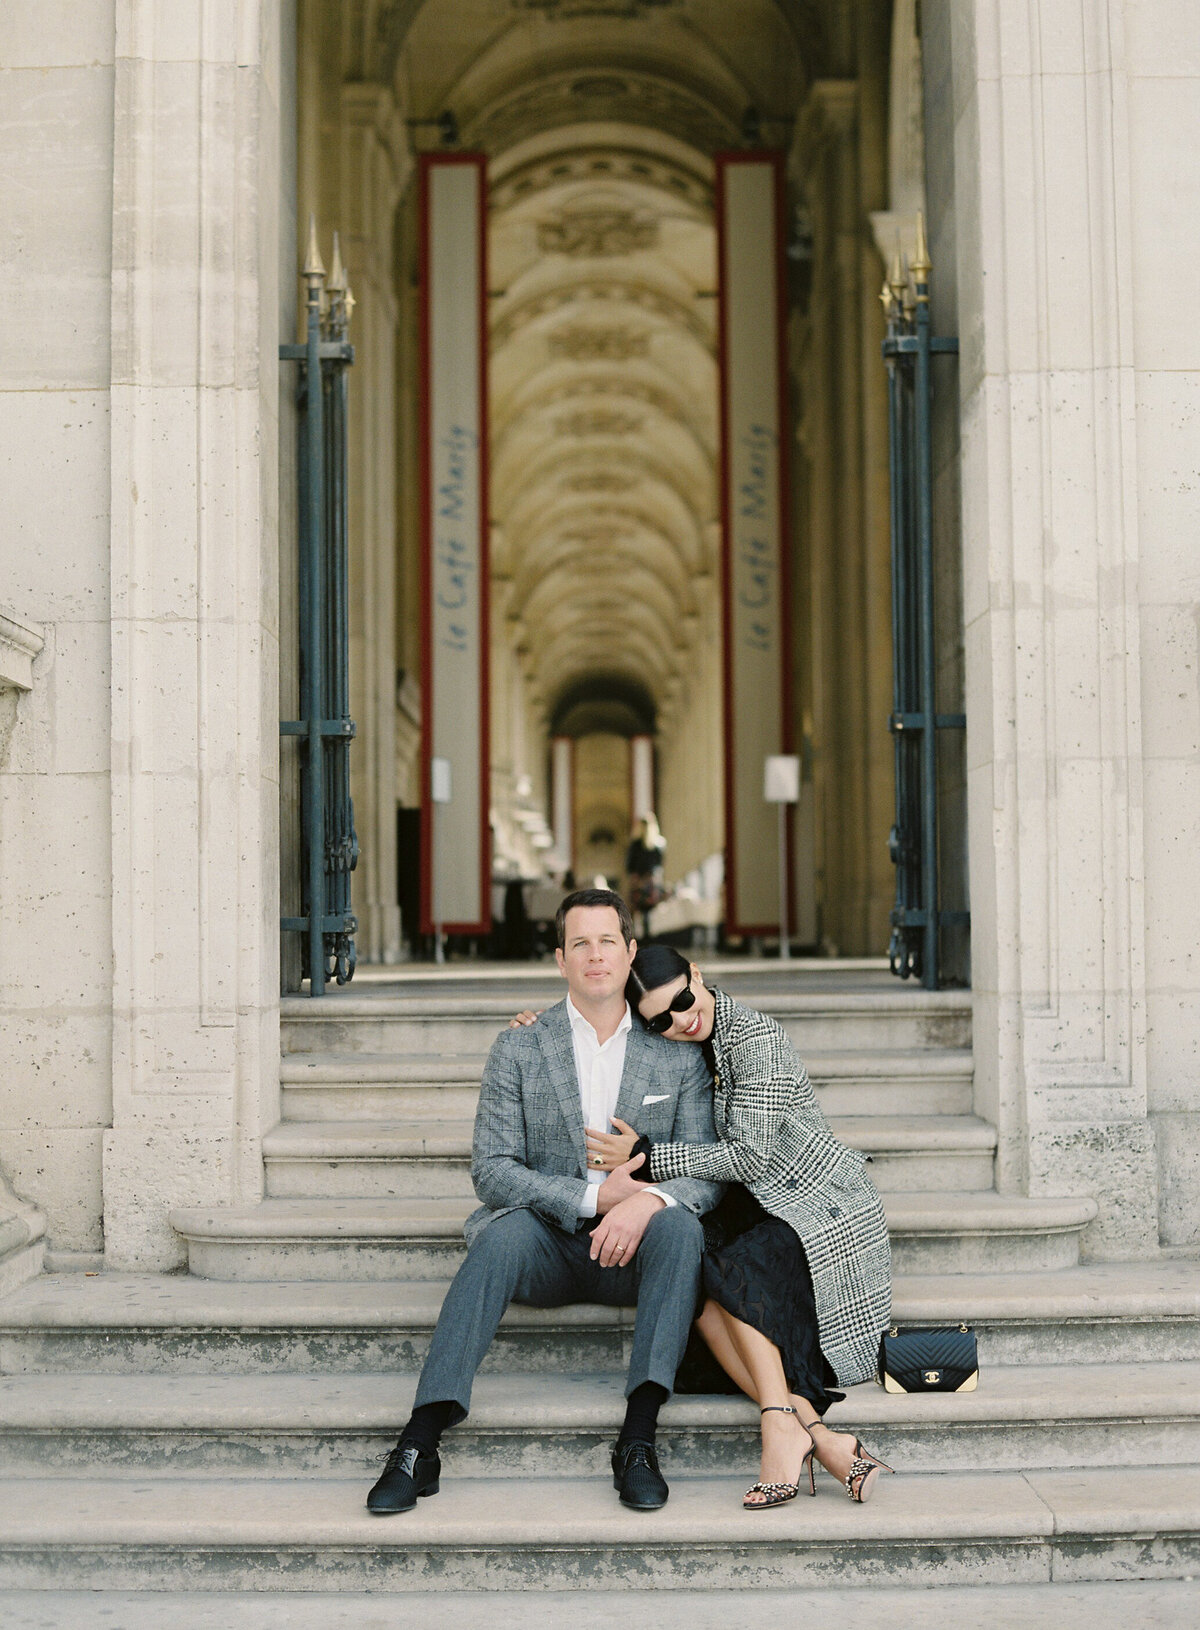 Carrie King Photographer Photography Fine Art Editorial Film Light Airy Colorado Denver Aspen Destination Travel Wedding Engagement Portrait Lifestyle6